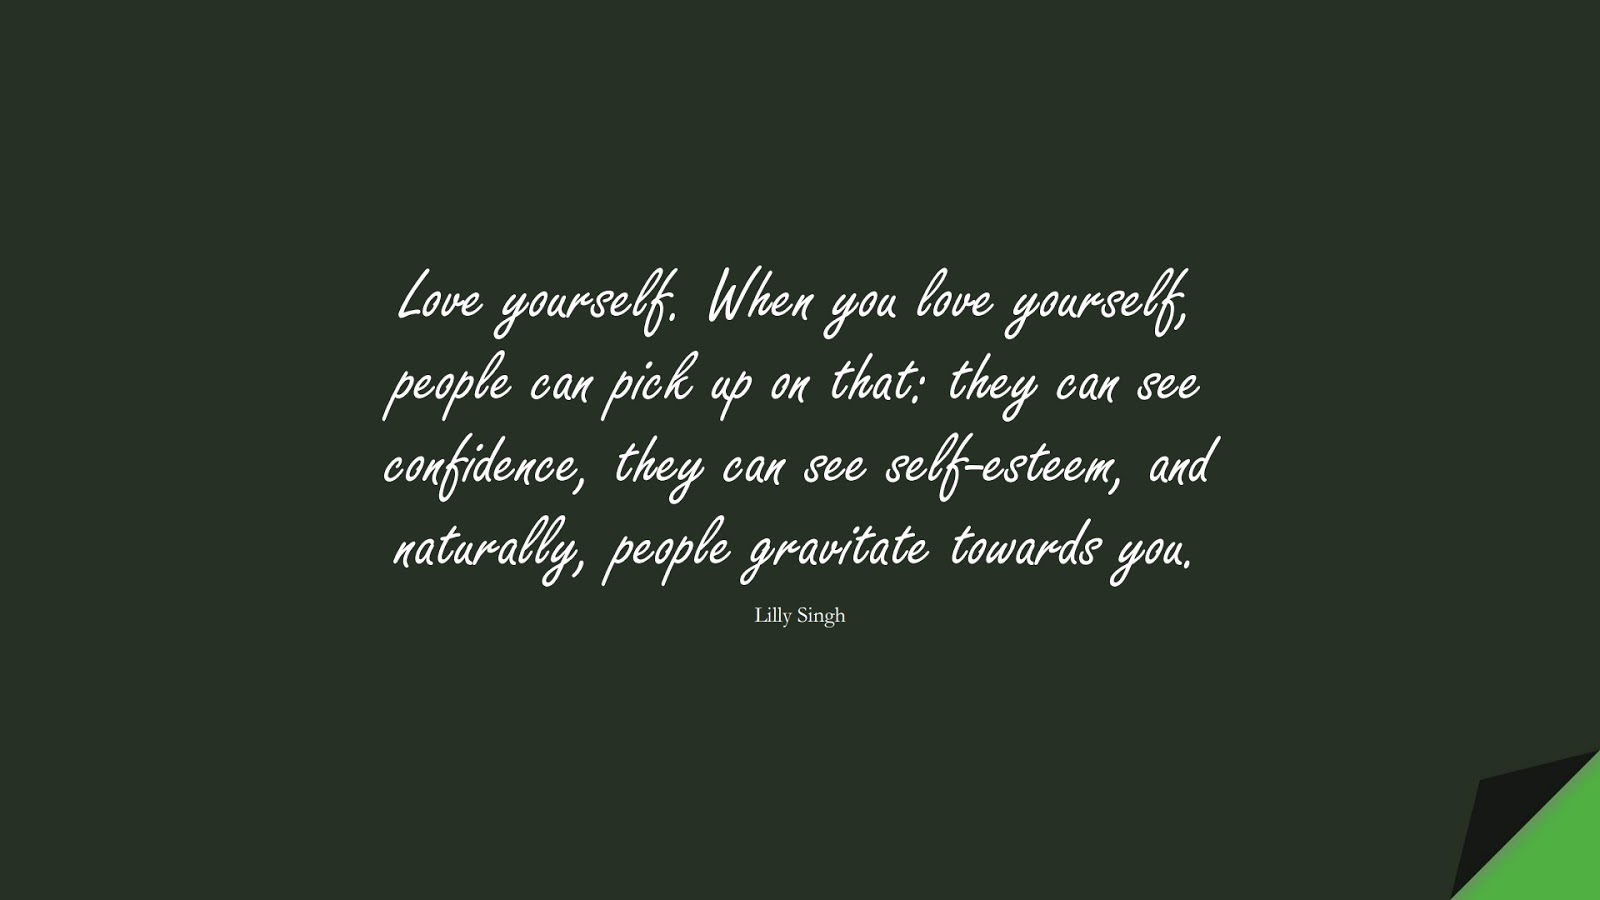 Love yourself. When you love yourself, people can pick up on that: they can see confidence, they can see self-esteem, and naturally, people gravitate towards you. (Lilly Singh);  #SelfEsteemQuotes